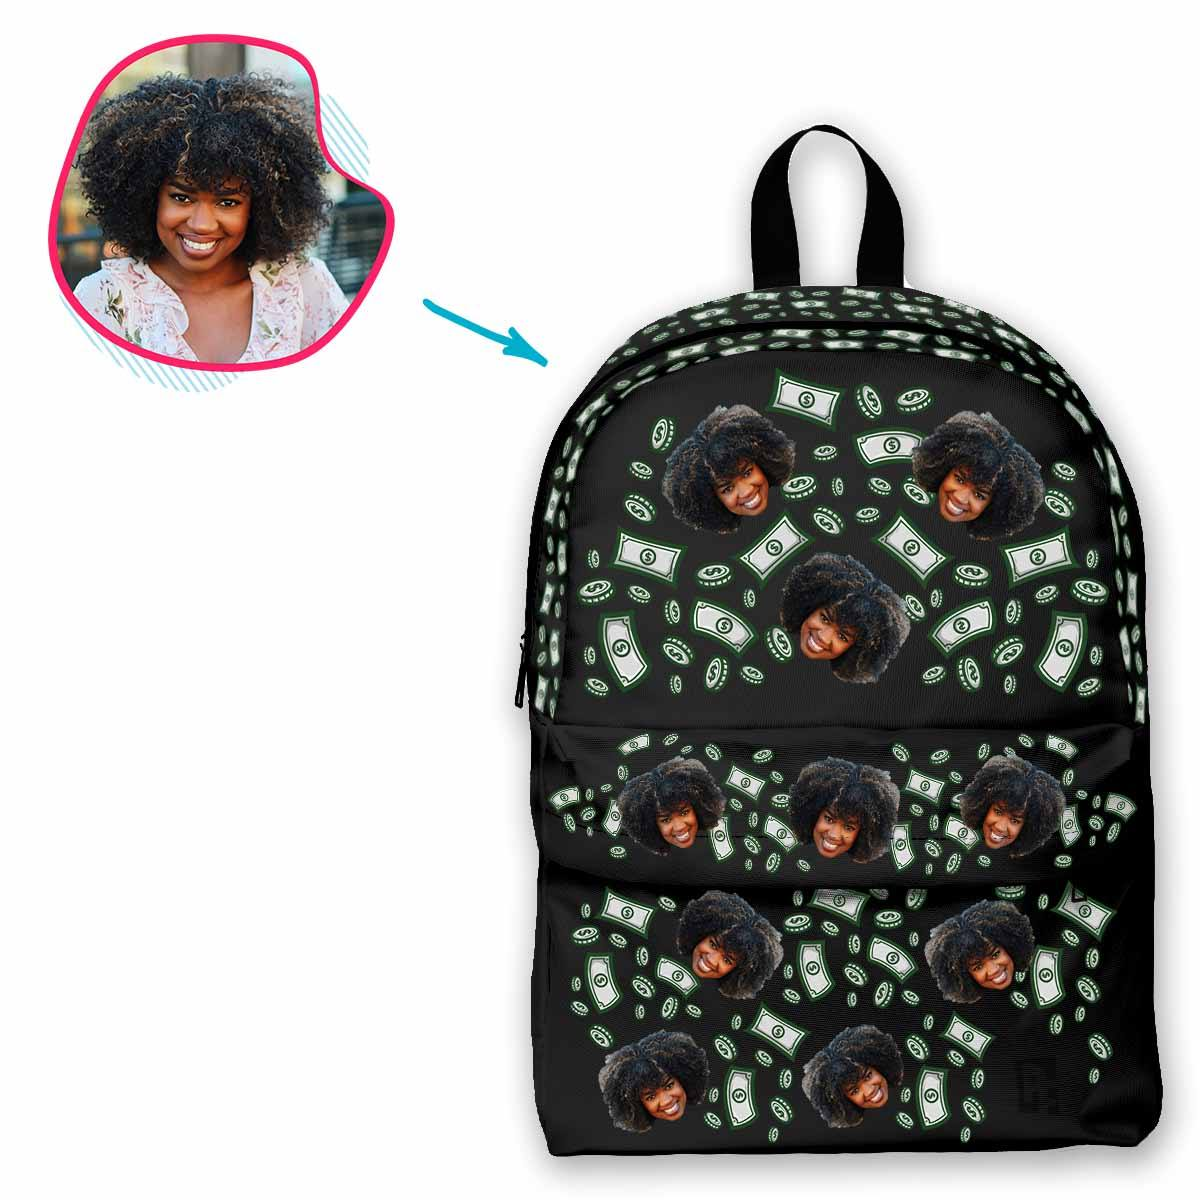 dark Money classic backpack personalized with photo of face printed on it